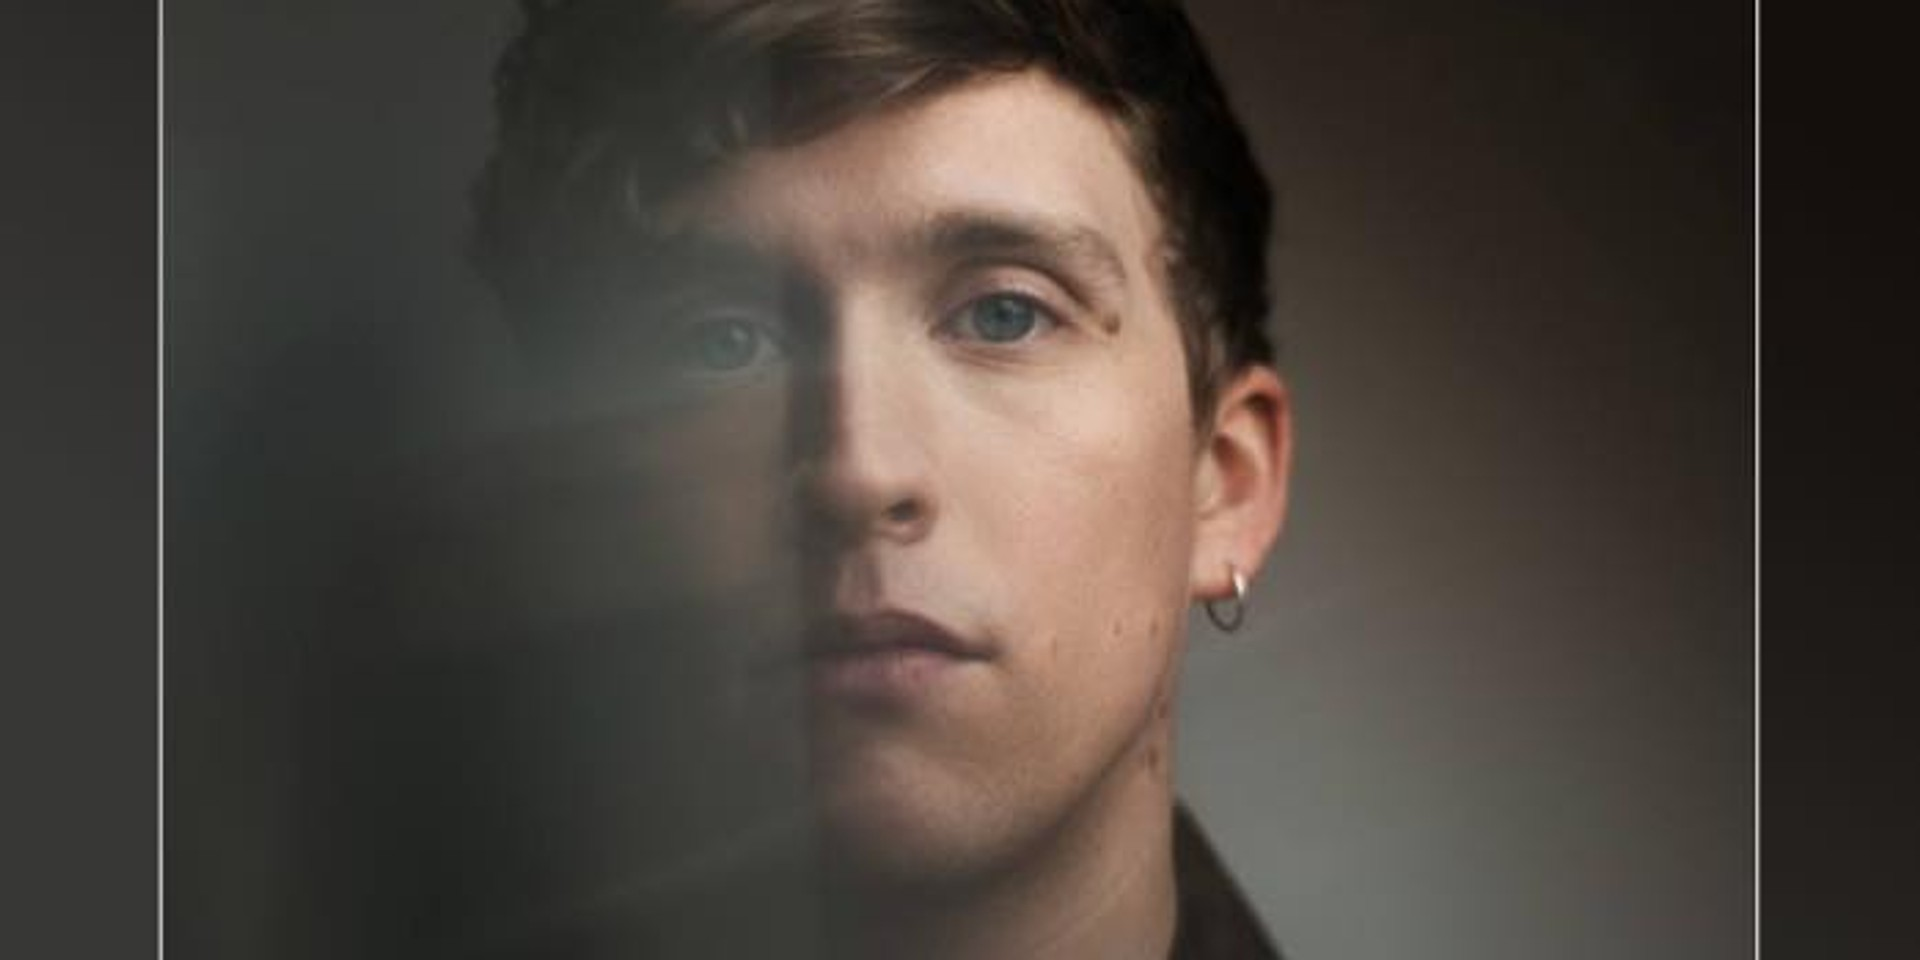 British musician Rhodes to perform in Singapore and Kuala Lumpur